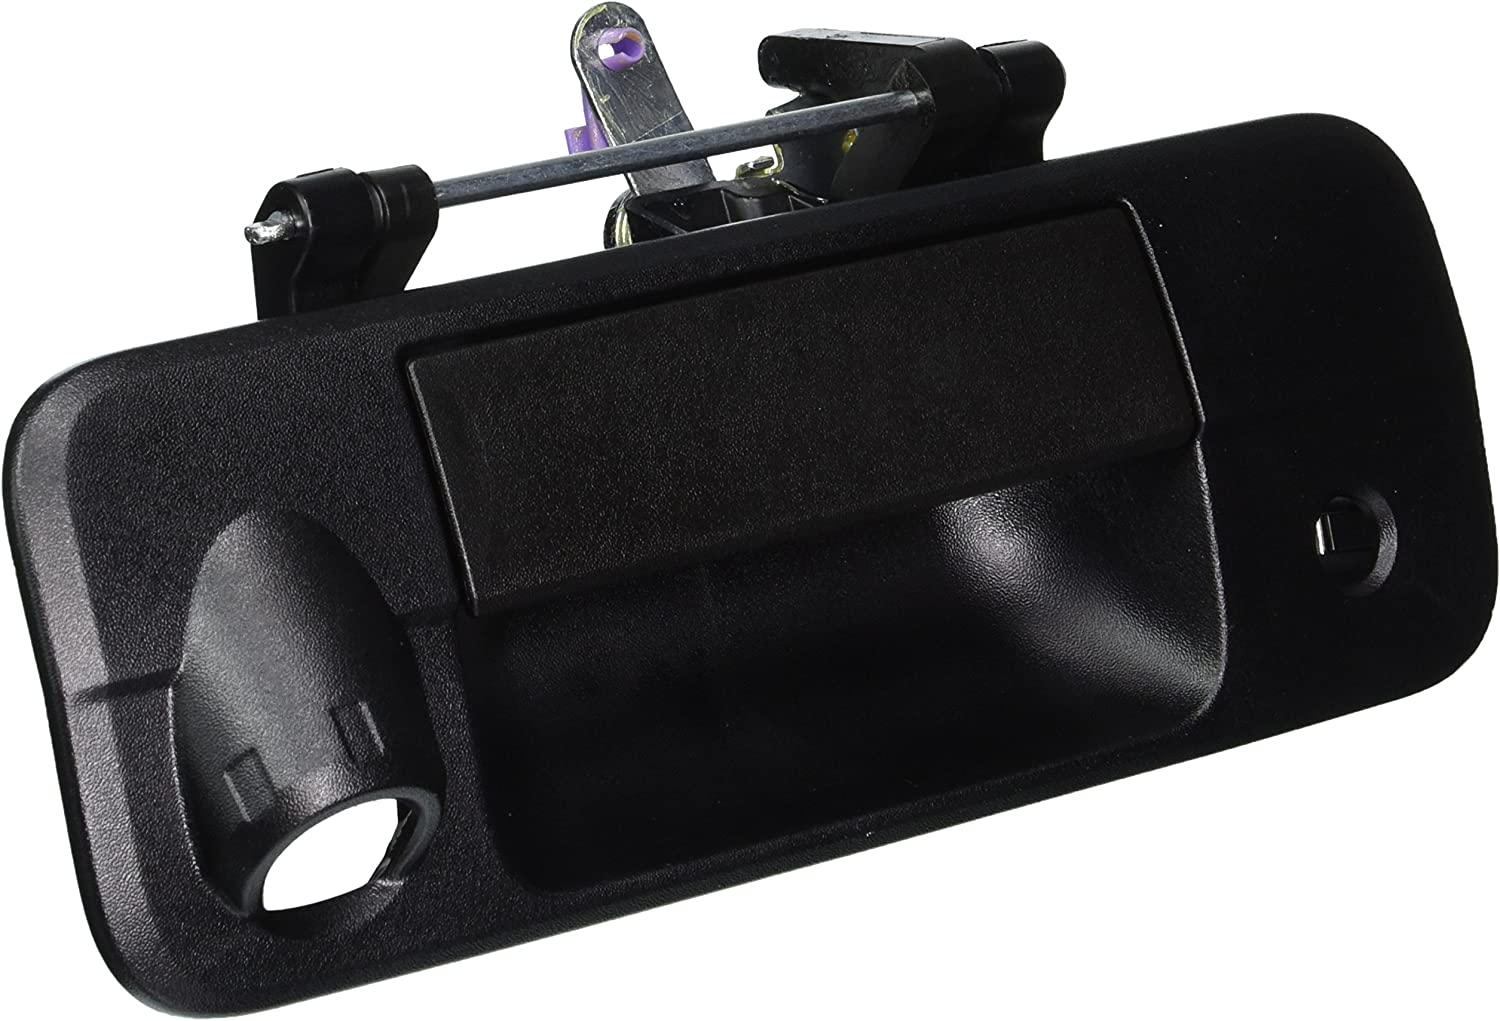 Genuine Toyota 69090-0C051 ! Super beauty product restock quality top! Save money Door Assembly Handle